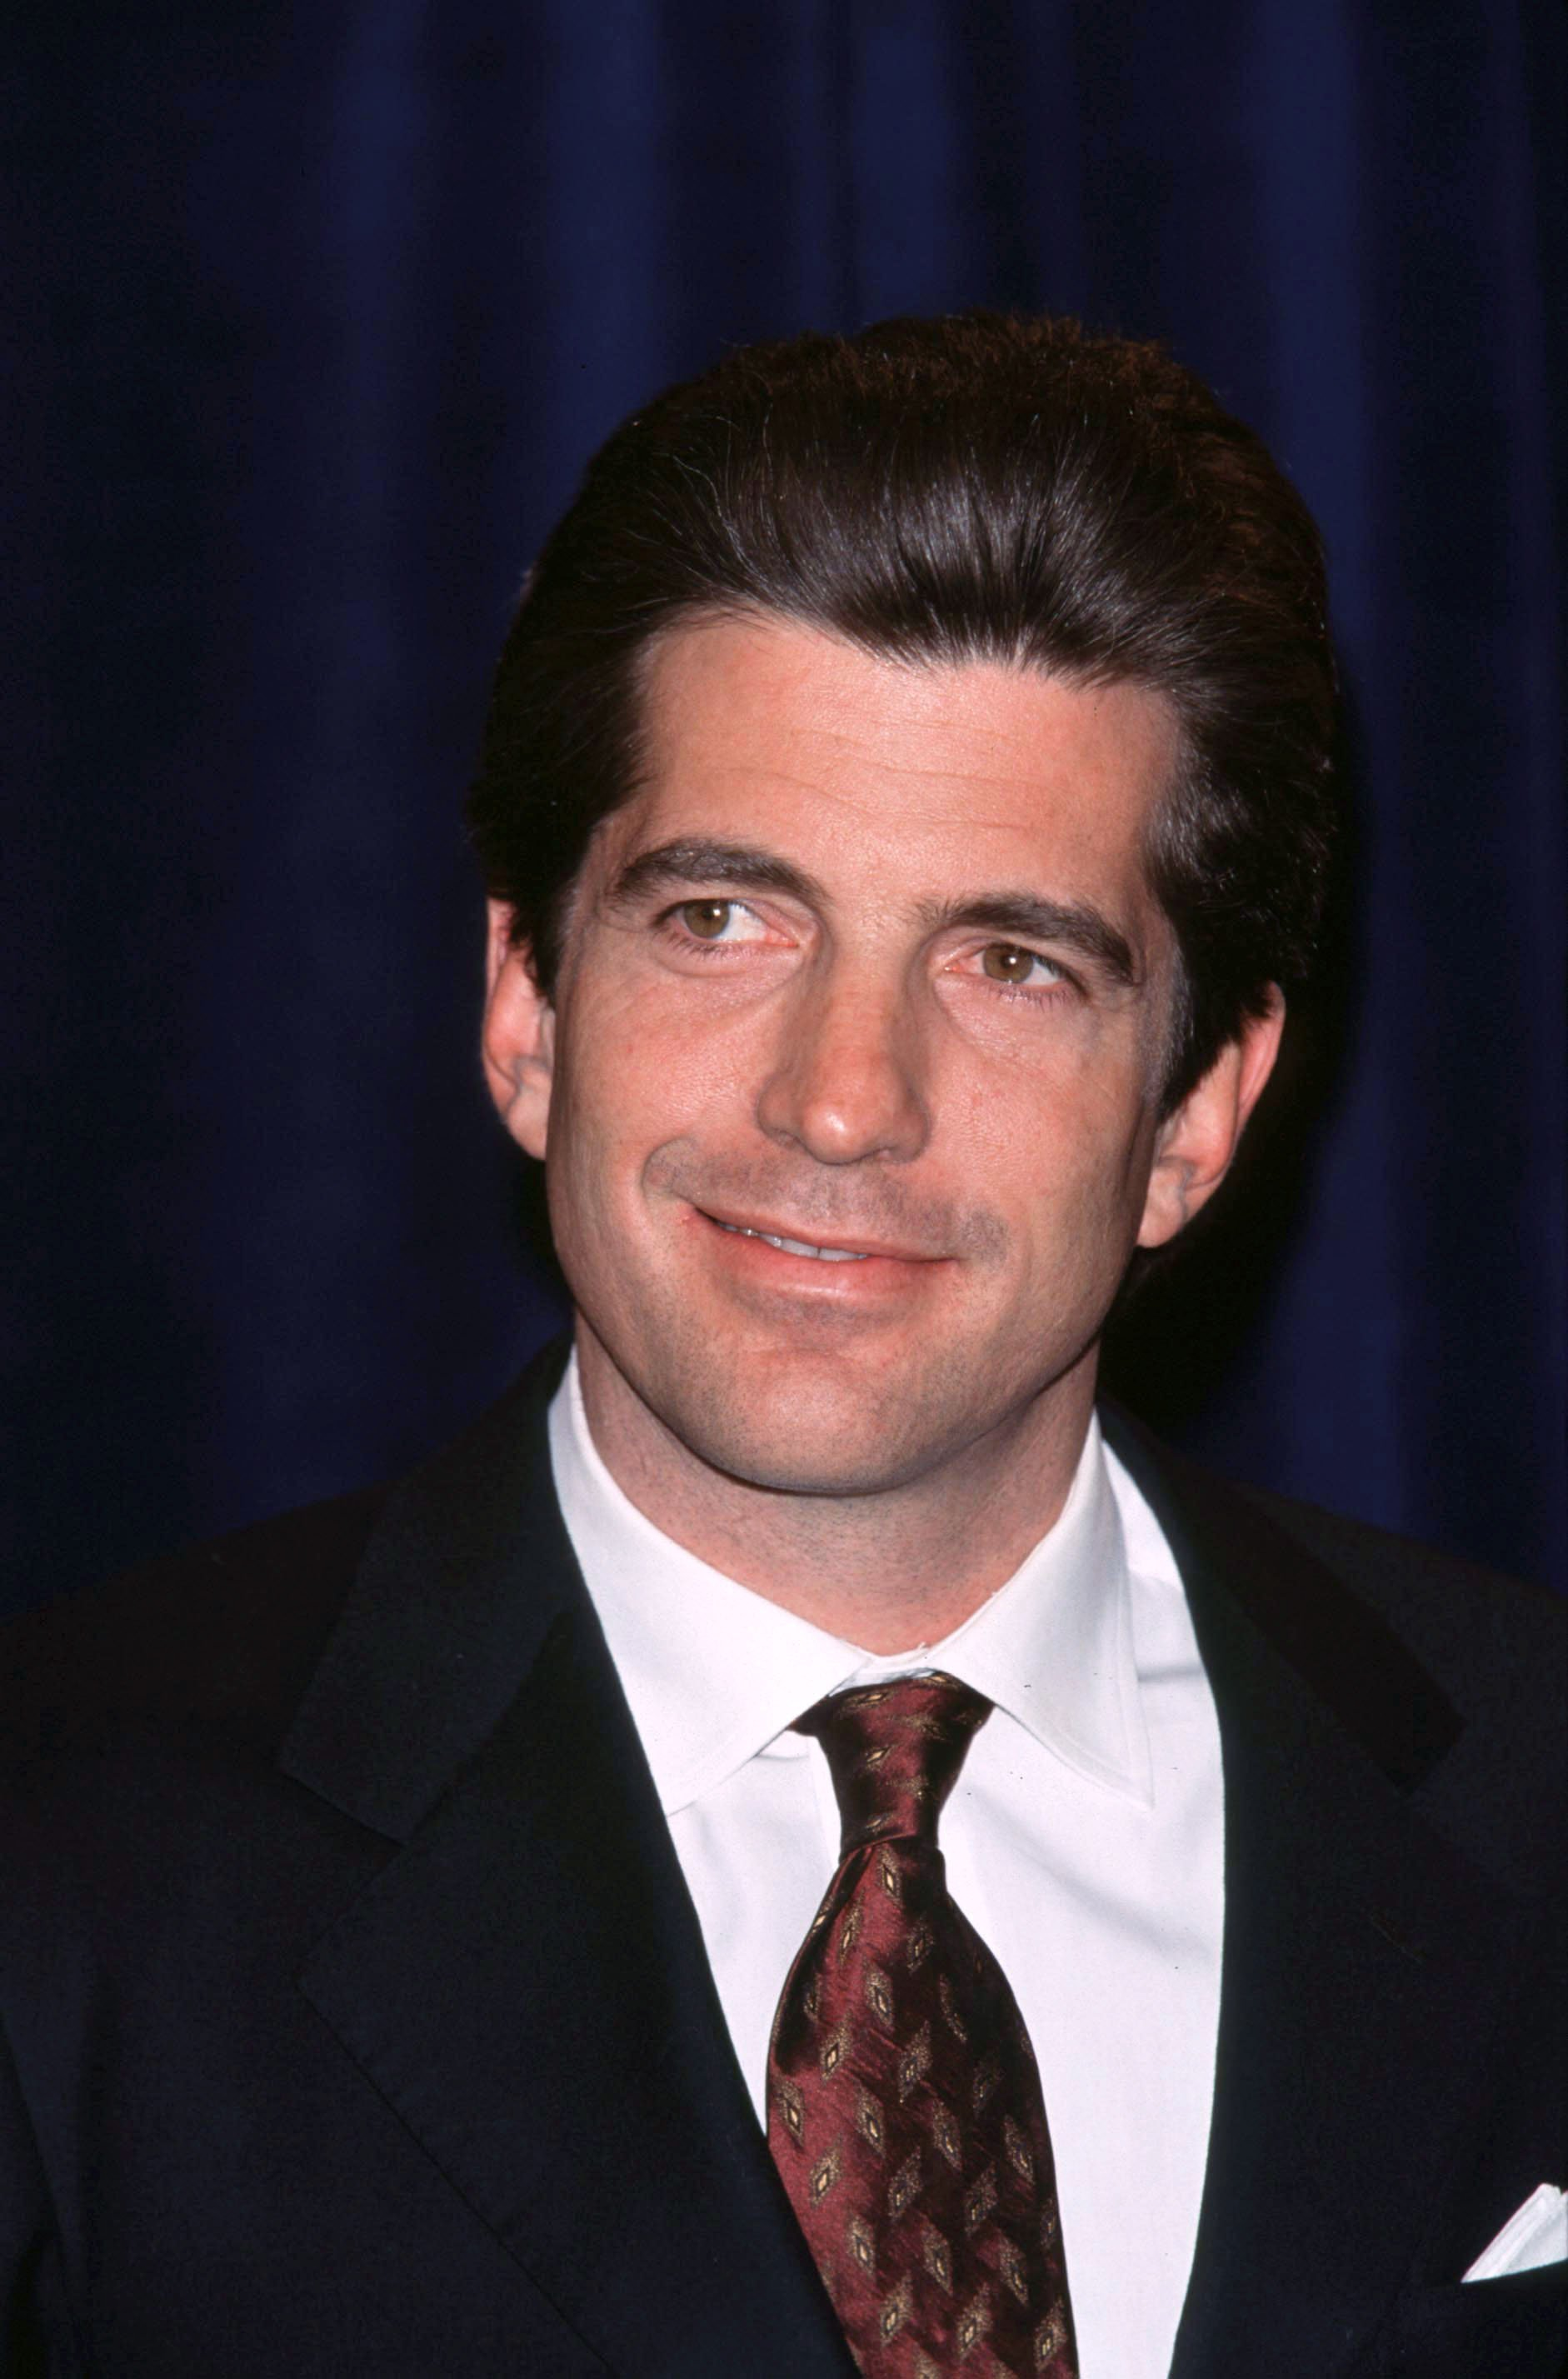 John F. Kennedy Jr. attends the Jackie Robinson Foundation Dinner on March 8, 1999. | Source: Getty Images.